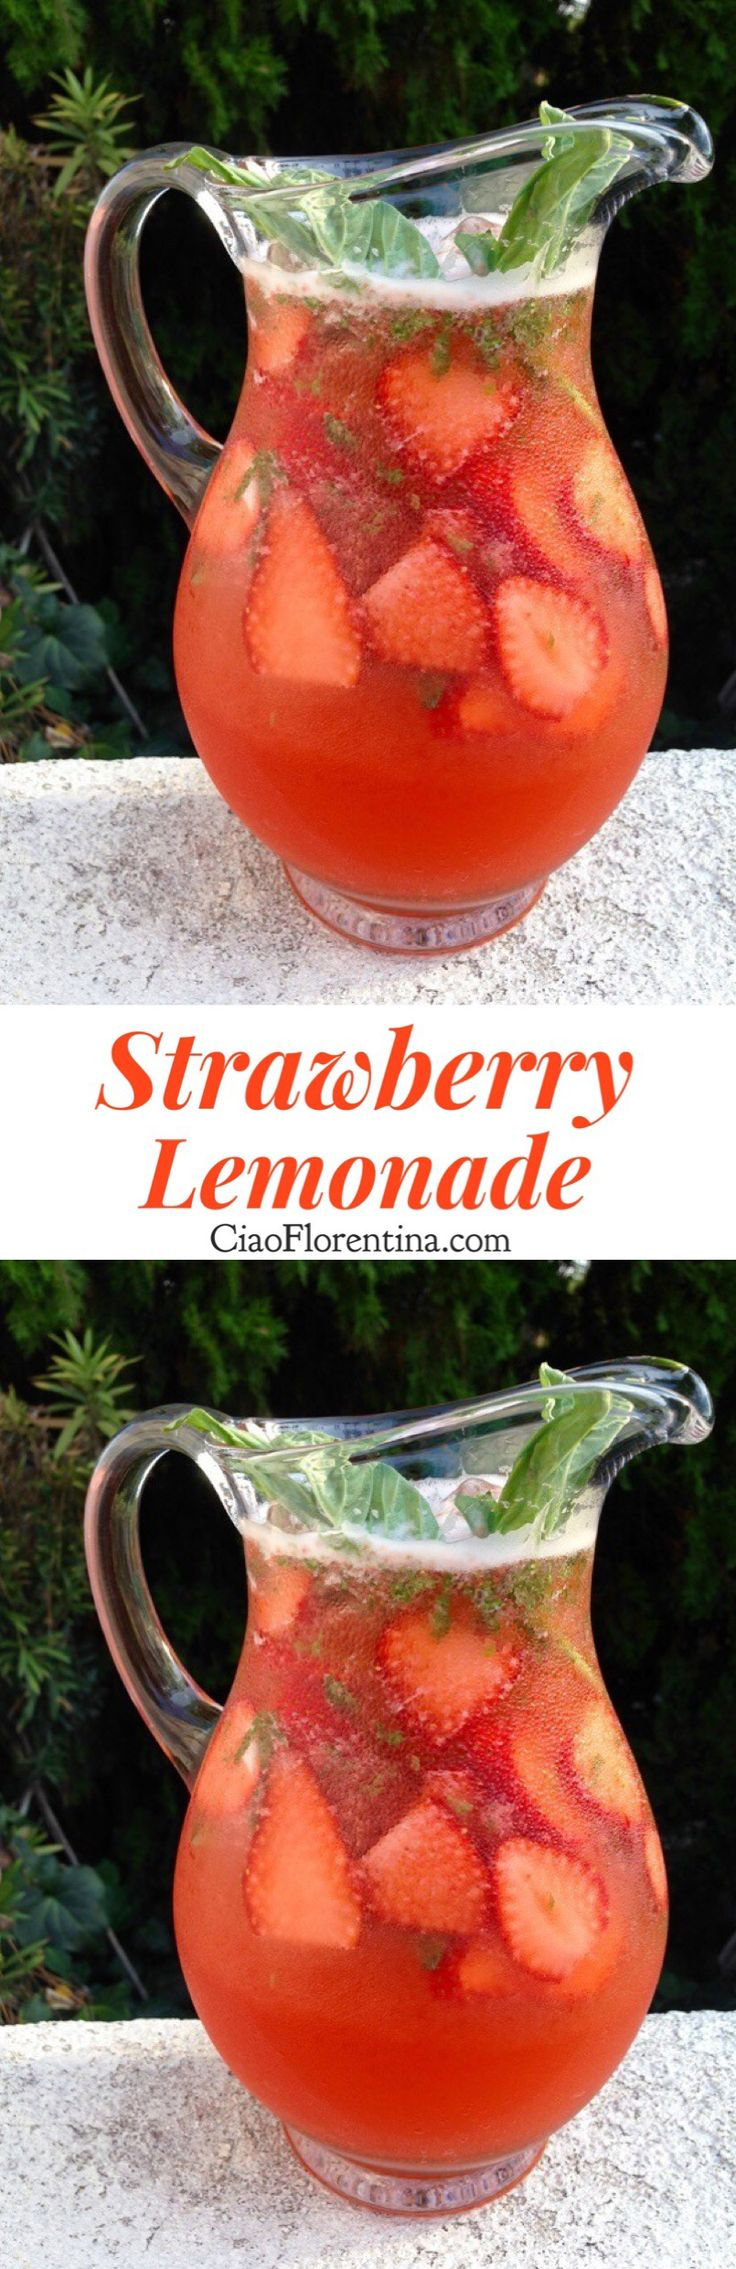 Strawberry Lemonade | CiaoFlorentina.com